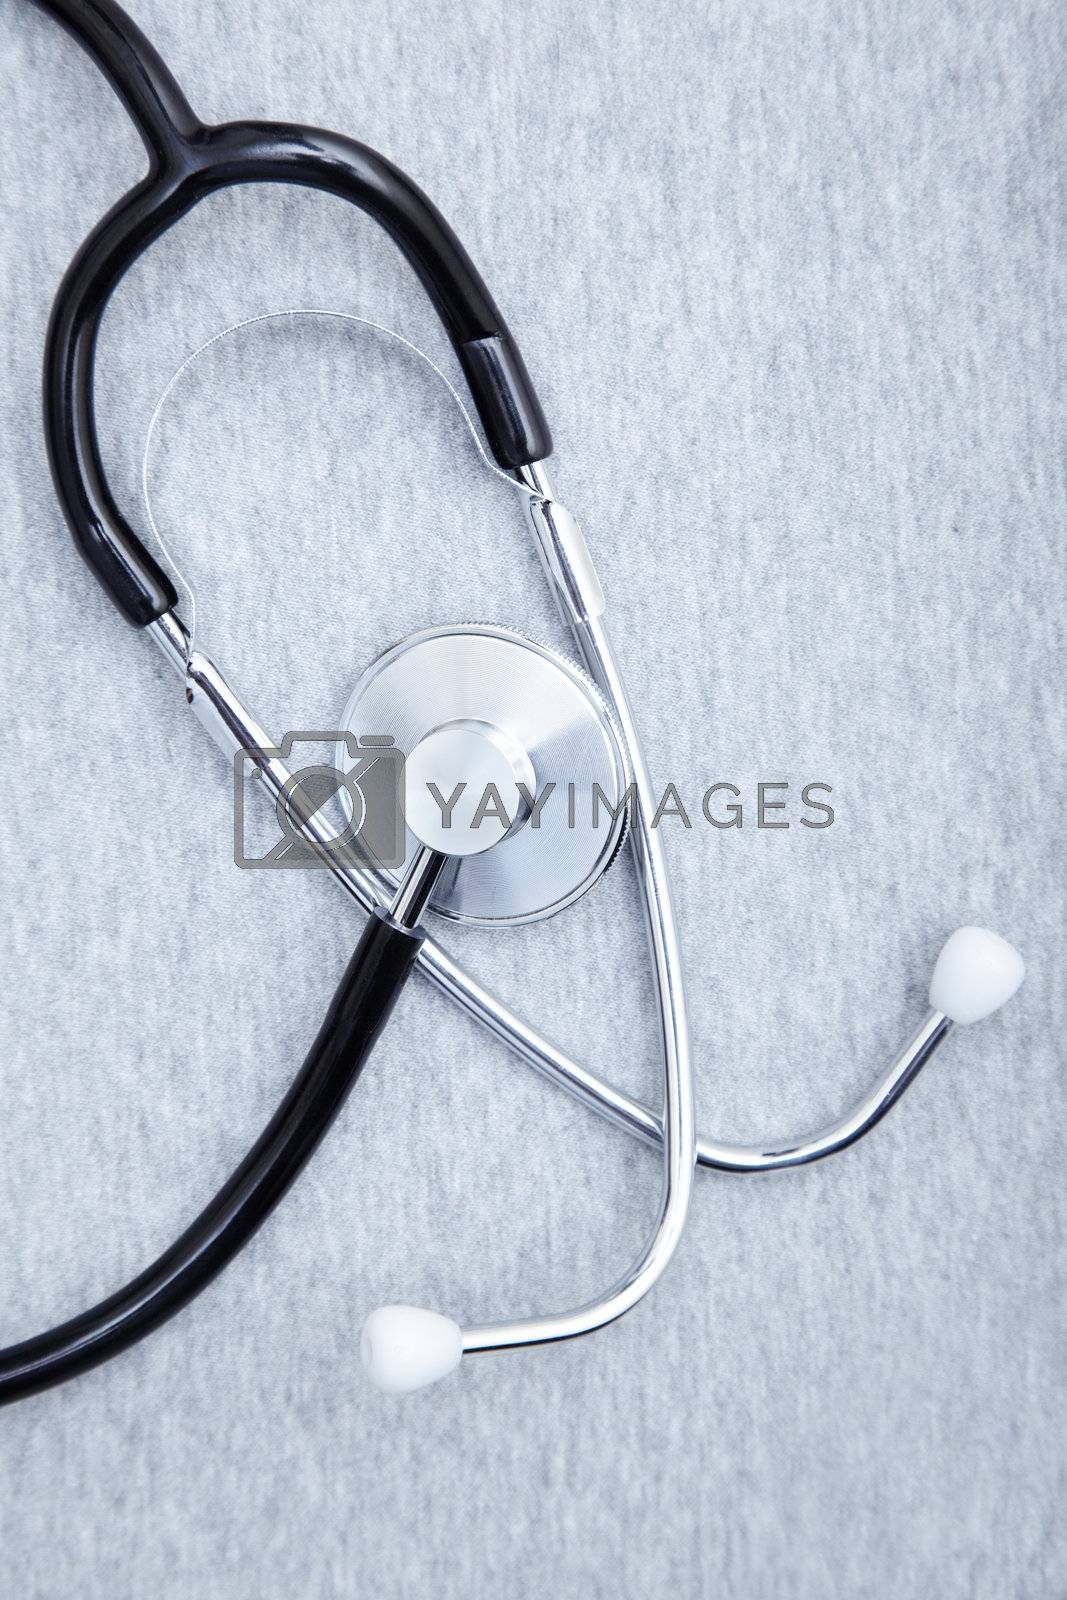 Medical stethoscope on a textured background. Close-up photo